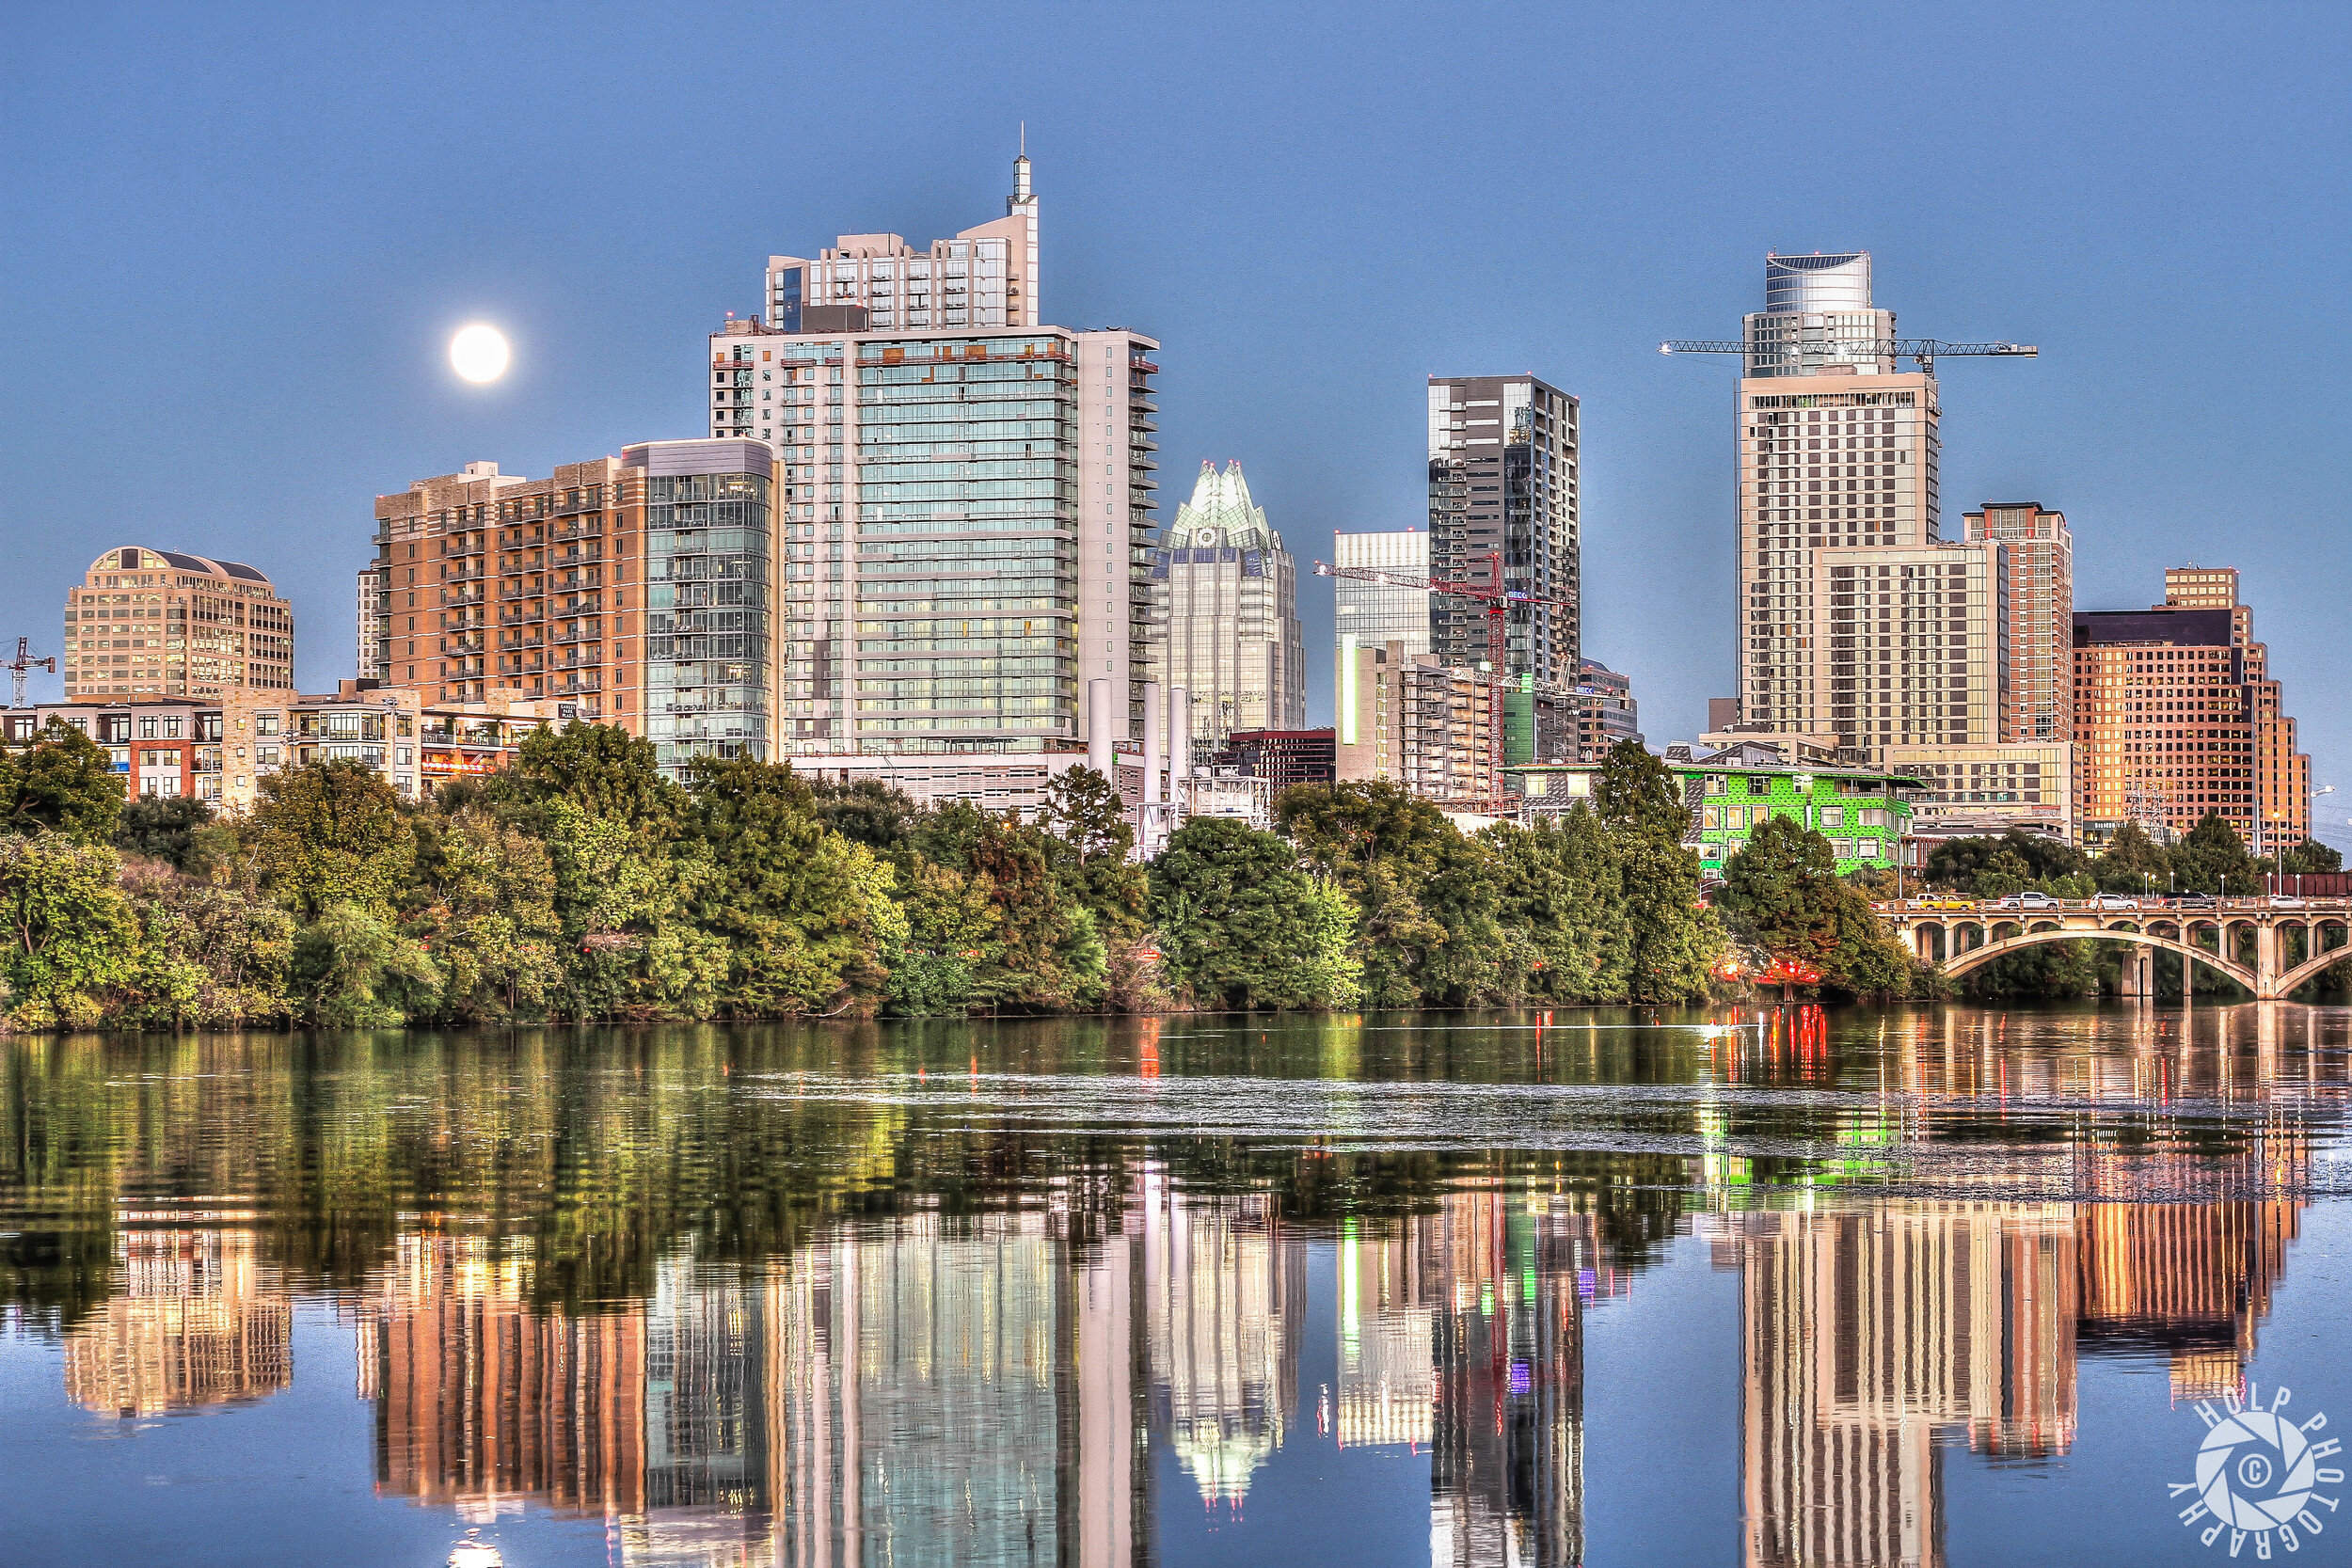 Moonrise-Kingdom-Austin-Texas-Landscape-Photography.jpg